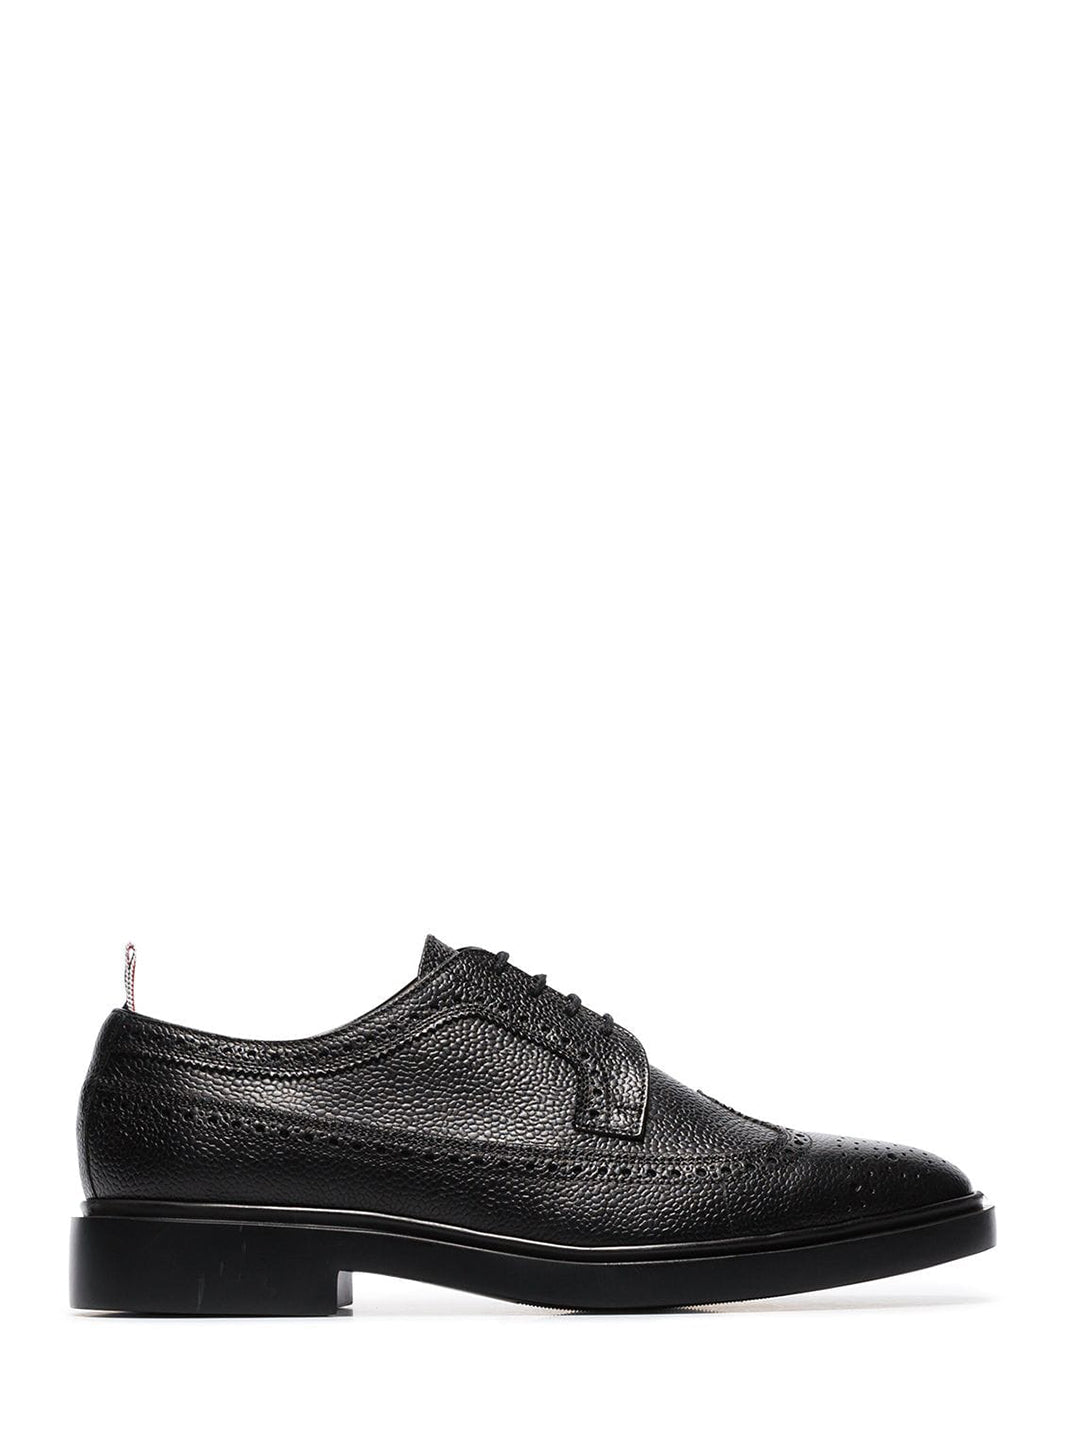 Thom Browne THOM BROWNE LACE UP DERBY SHOES